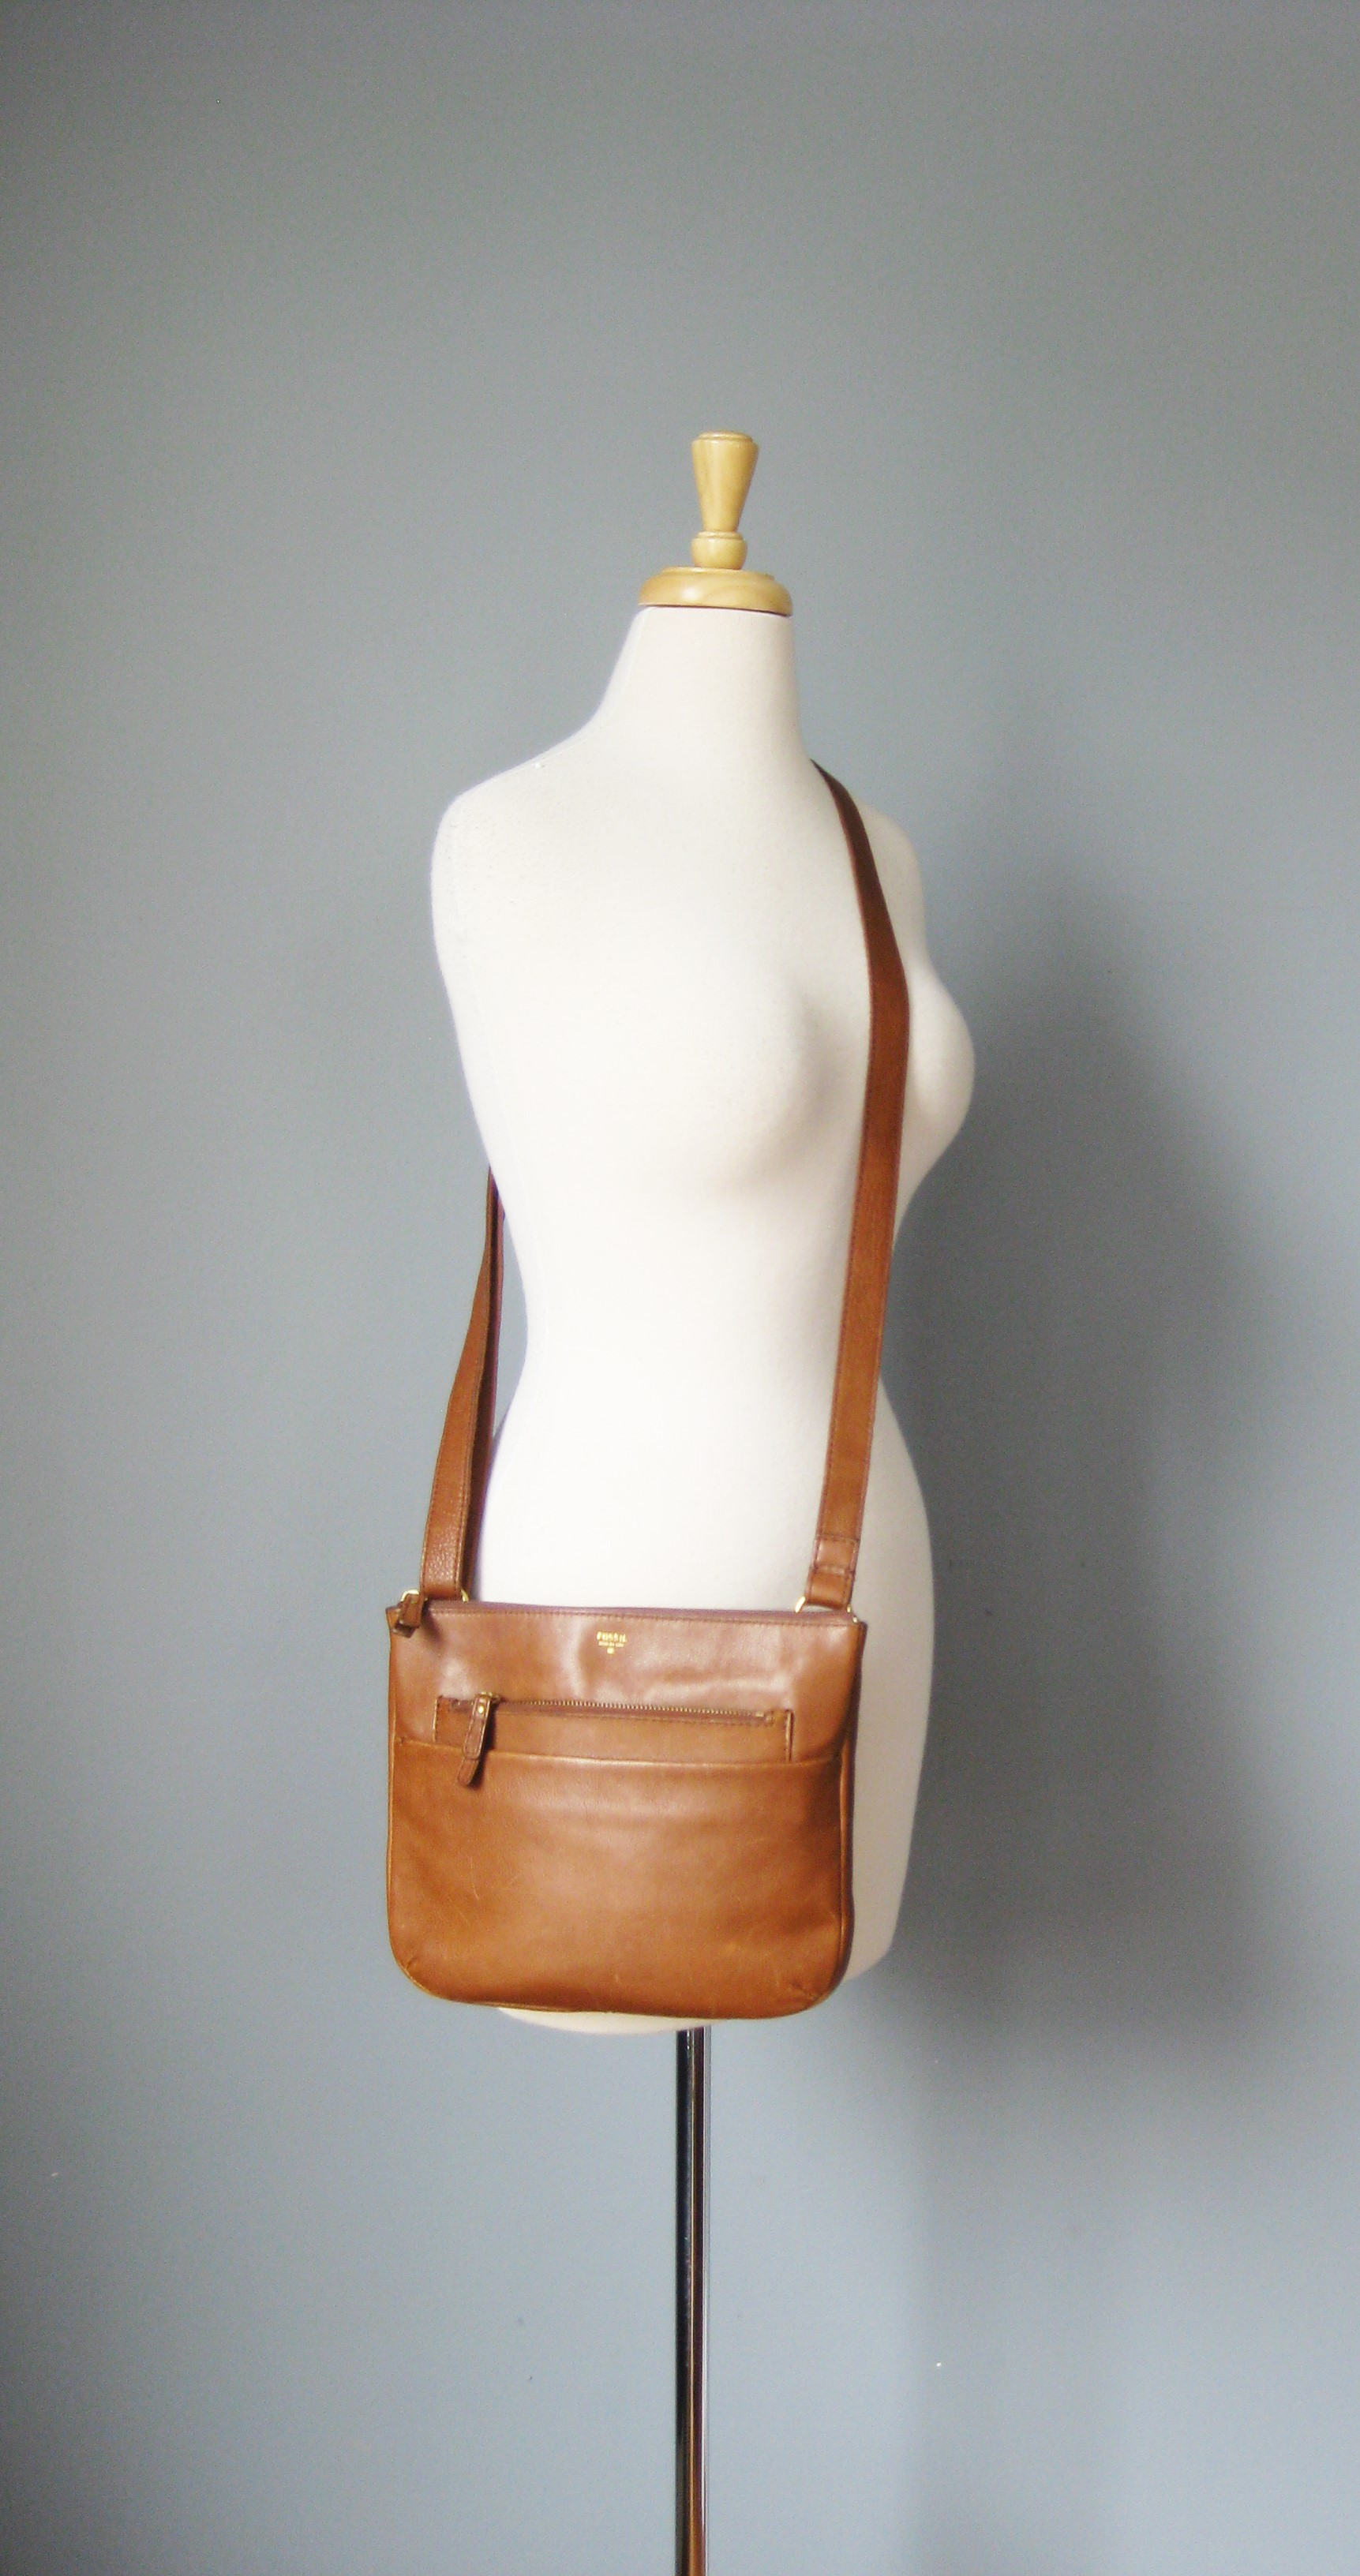 Fossil Leather Crossbody, Brown, Size: None<br /> Really nice pre-owned leather crossbody by Fossil<br /> roomy with slim profile<br /> Long adjustable leather strap<br />       max length: 28in<br />       minimum:14in (can be used as a shoulder or over the arm bag when shortened)<br /> 2 outside slip pockets<br /> 1 outisde zip pocket<br /> 2 inside slip pockets<br /> 1 inside zip pocket<br /> <br /> excellent condition, with some cosmetic characters marks on the leather as you can see from the photos.<br /> <br /> thanks for looking!<br /> #37753